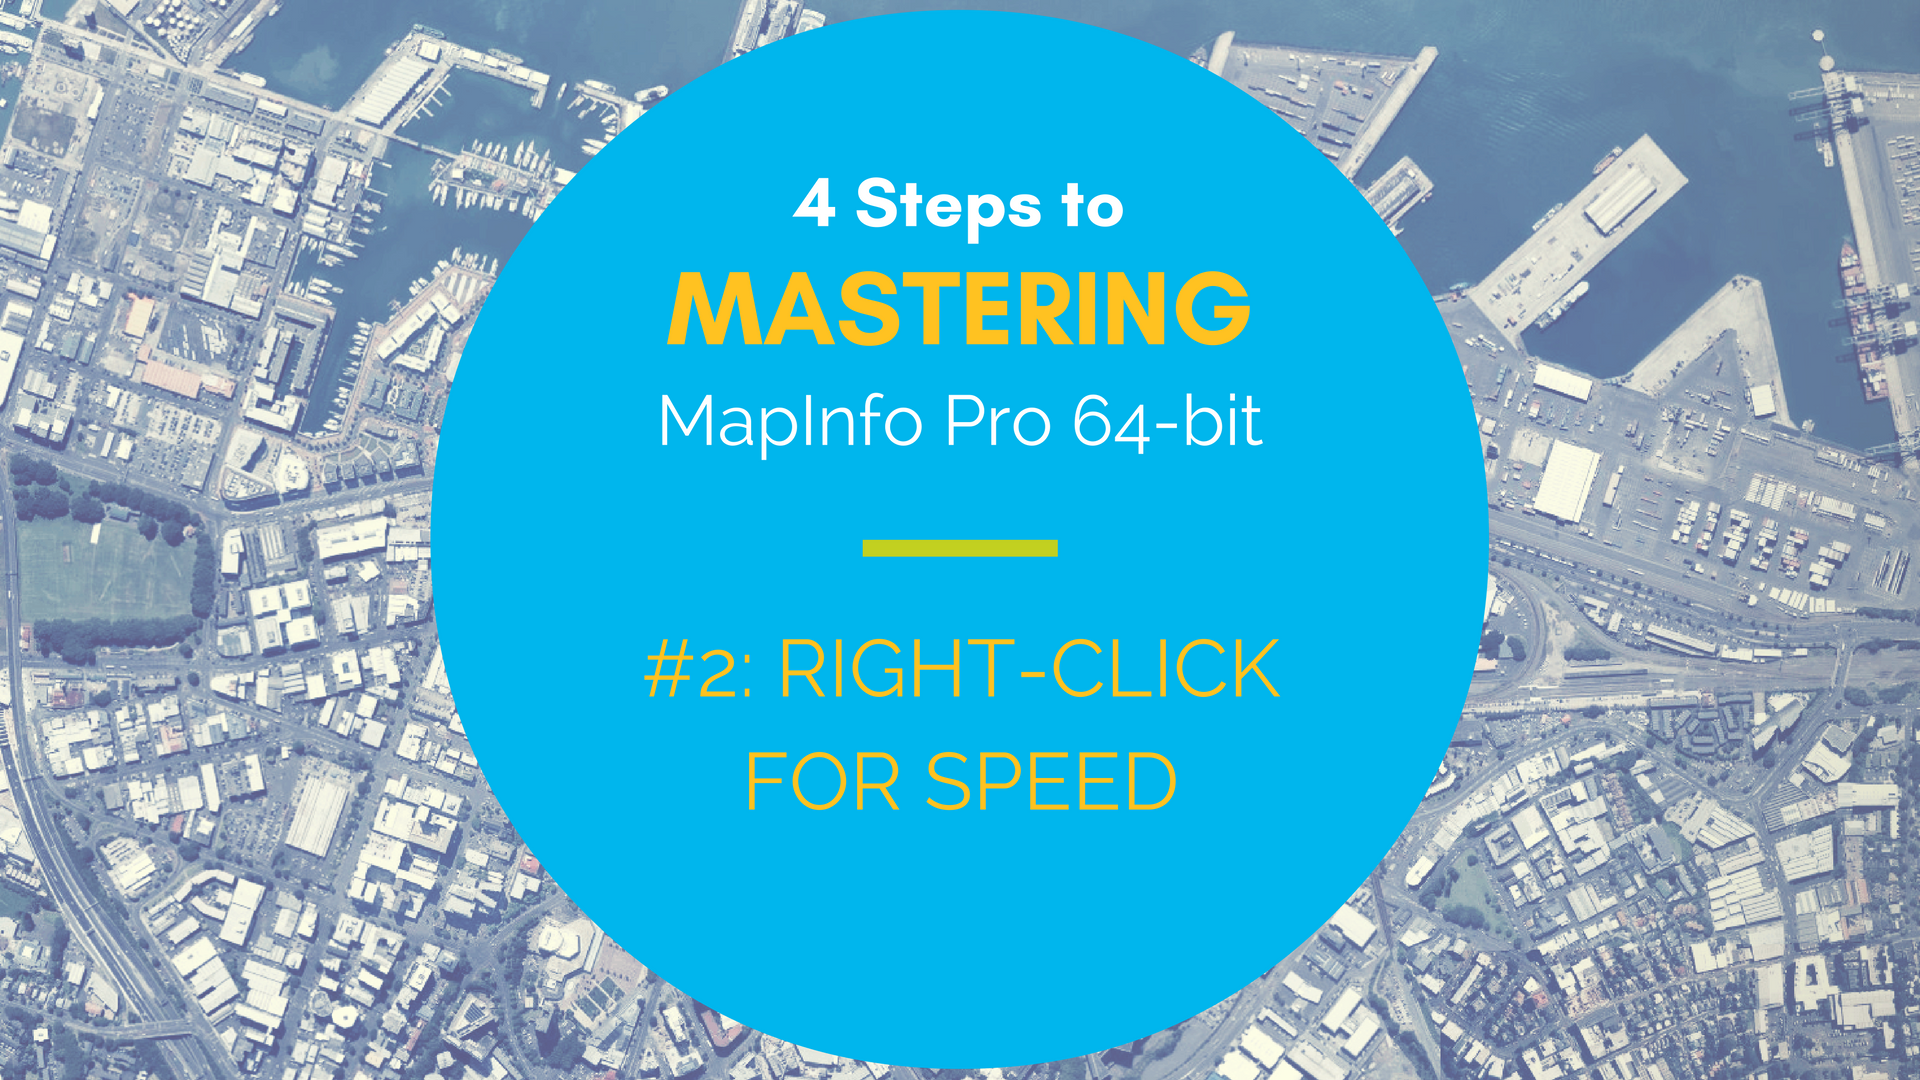 Mastering MapInfo Pro 64-bit - #2 Right-click For Speed